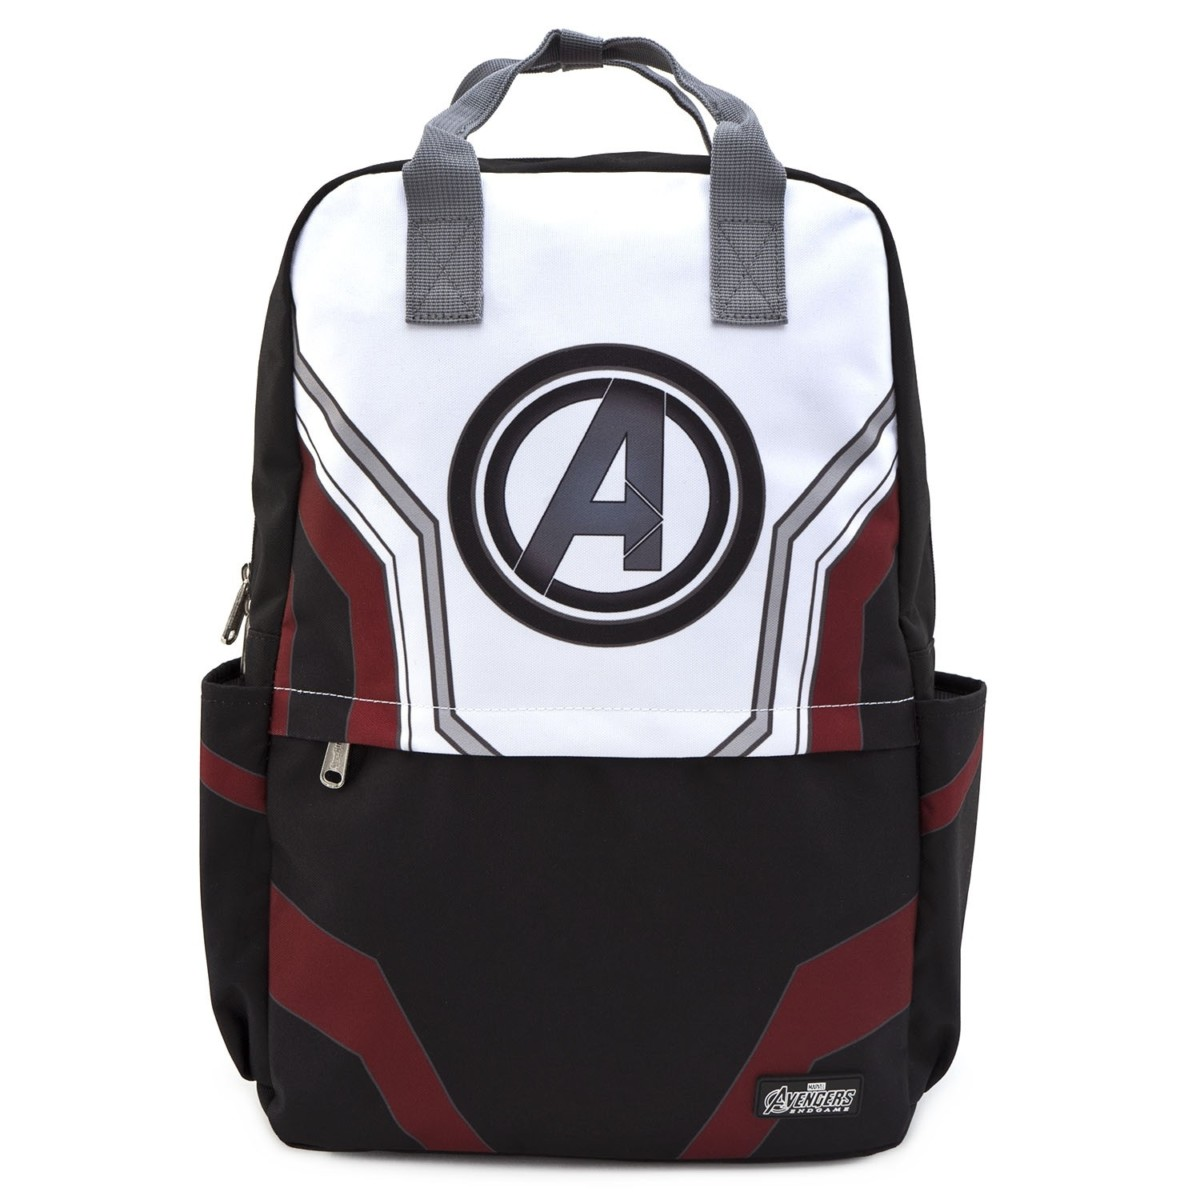 New Marvel Backpacks & Accessories from Loungefly 4